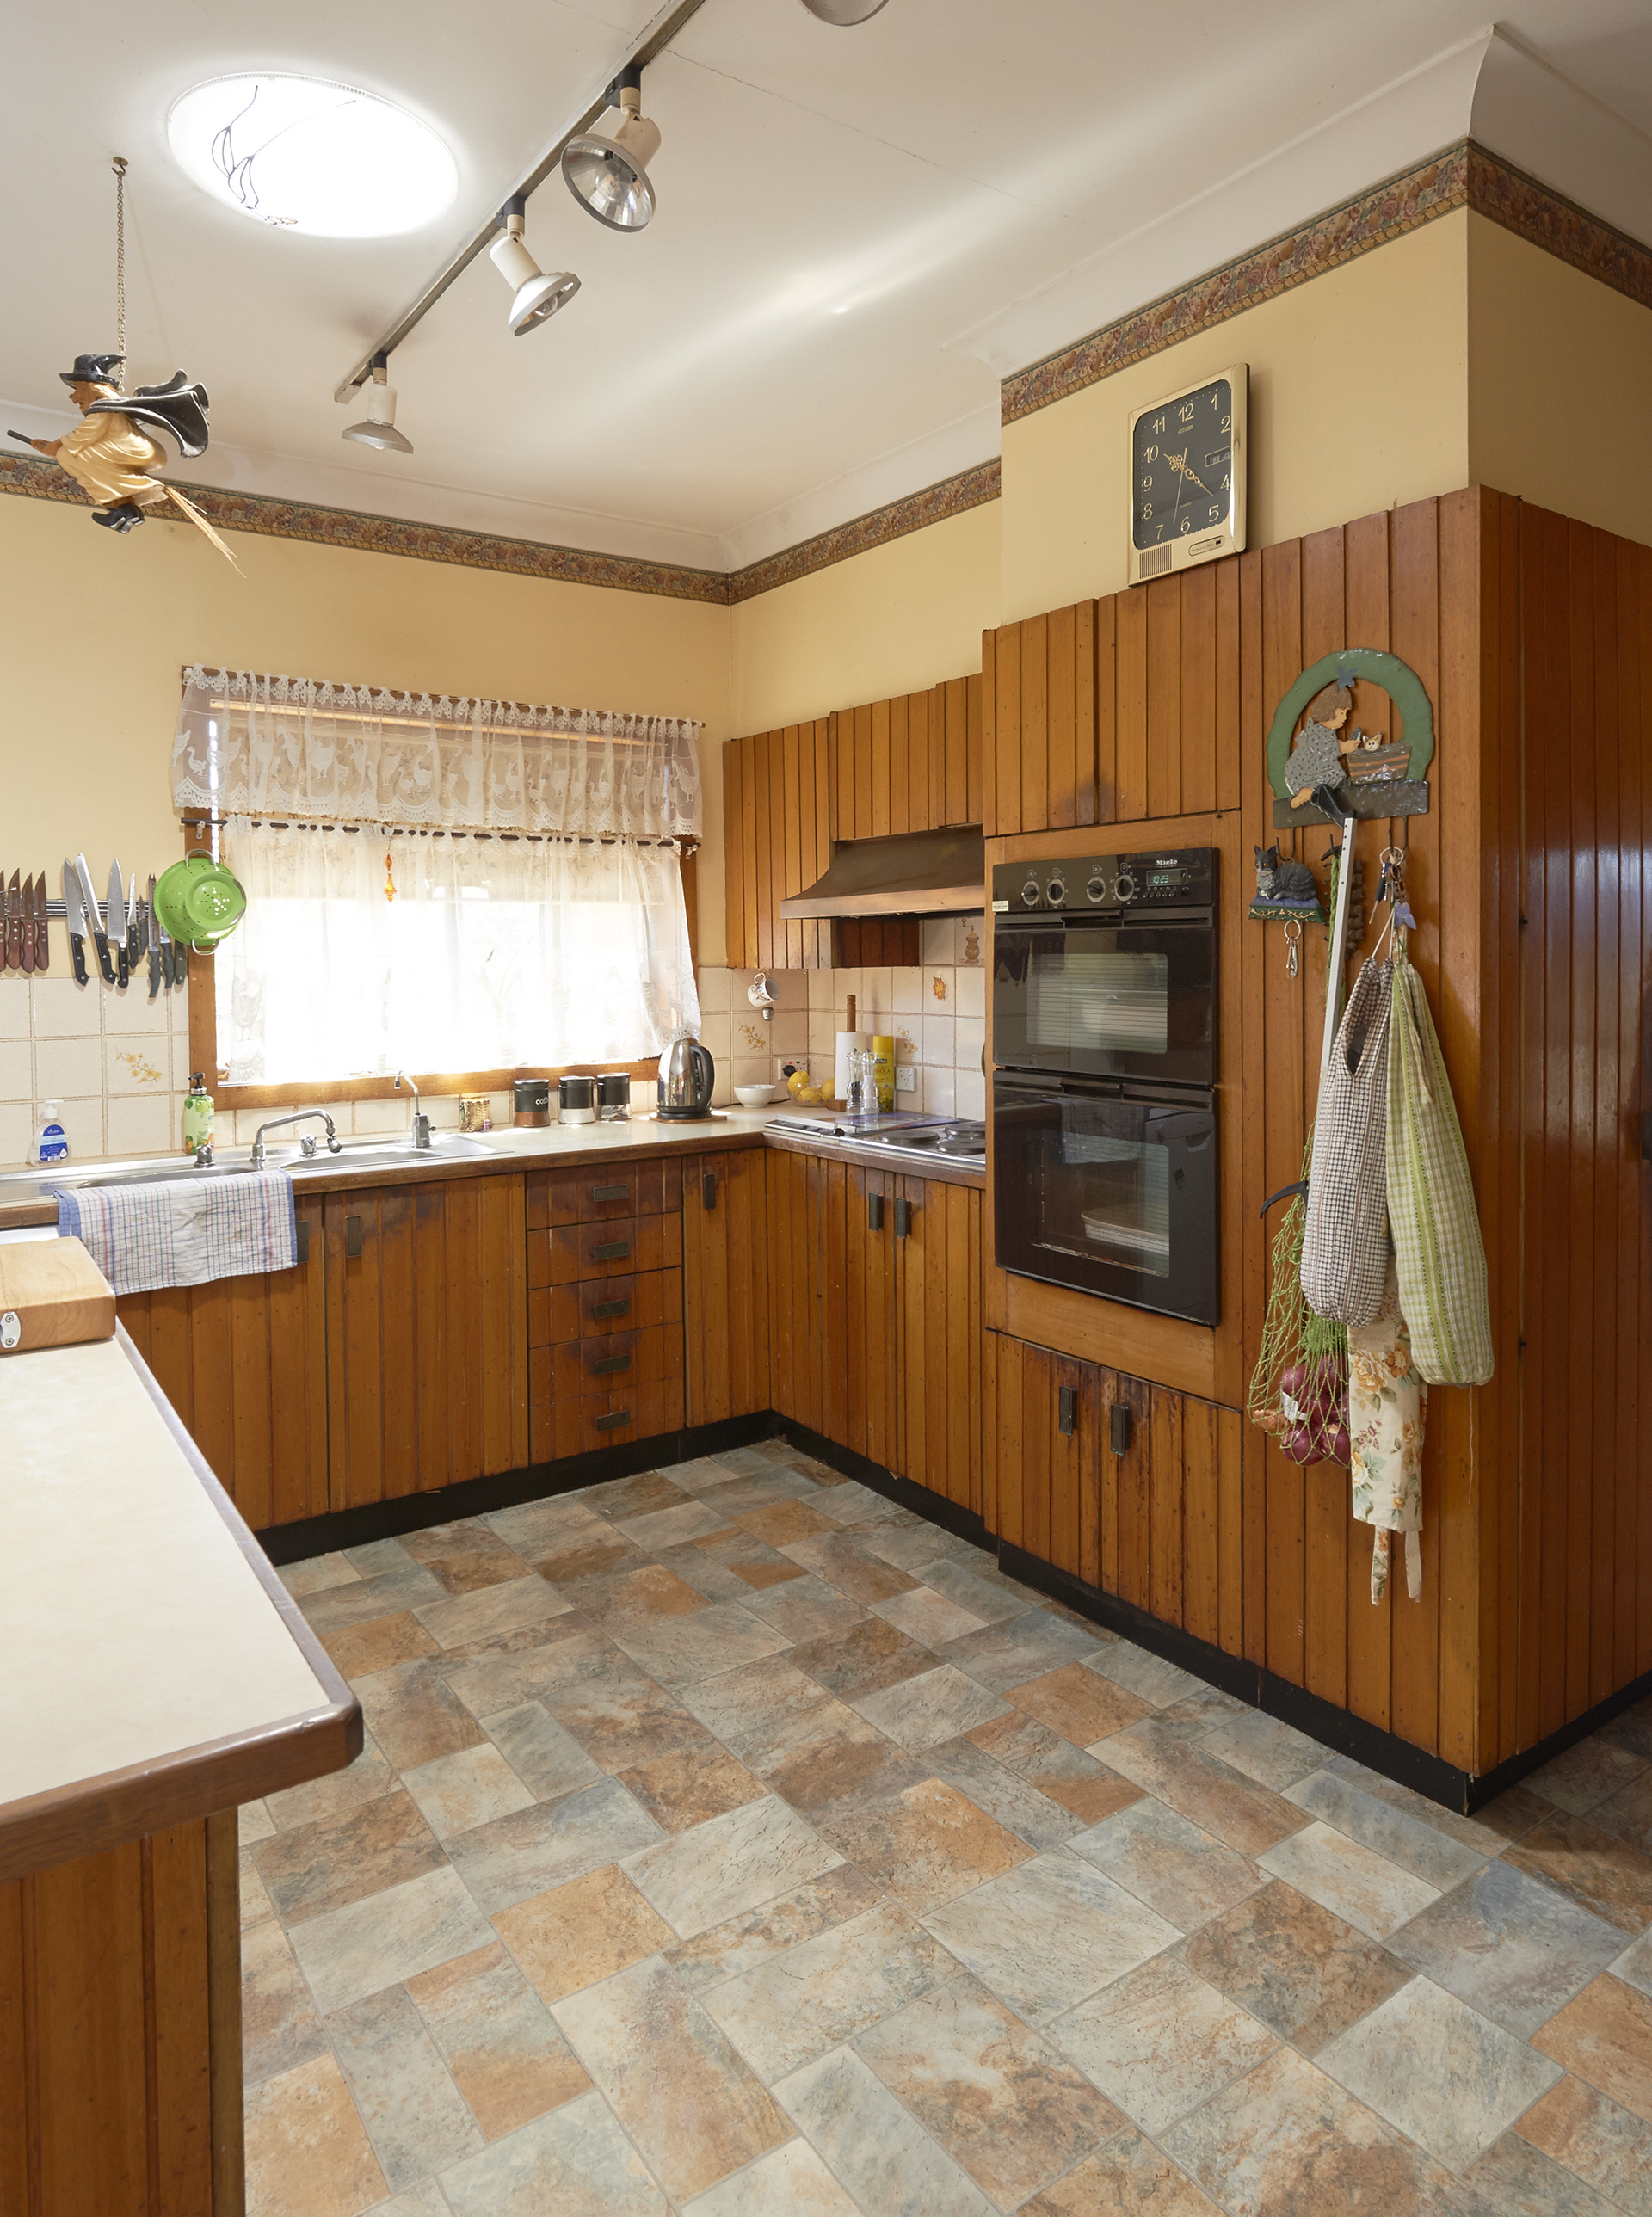 The 5 Secrets Of Budget Kitchen Renovating Homes To Love